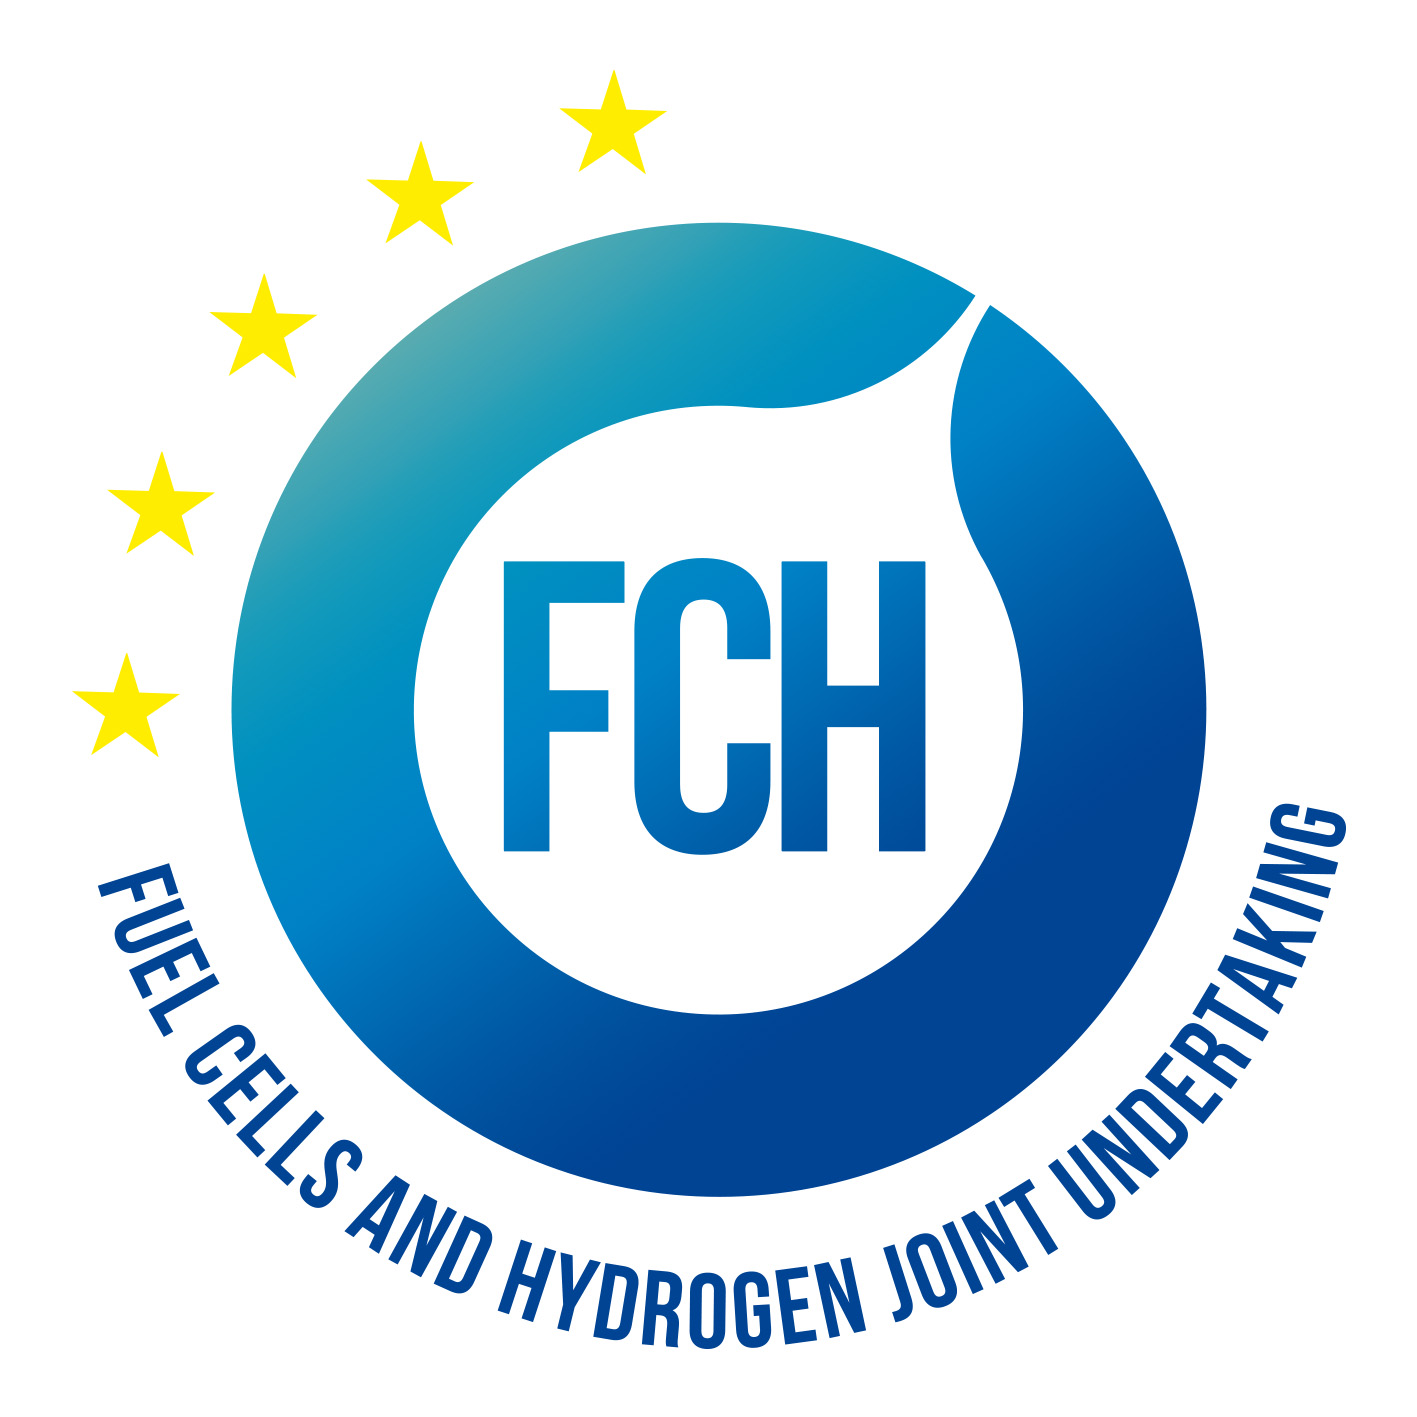 http://www.fch.europa.eu/sites/default/files/FCH%20logo%20Quadri%20%28ID%201298148%29.jpg